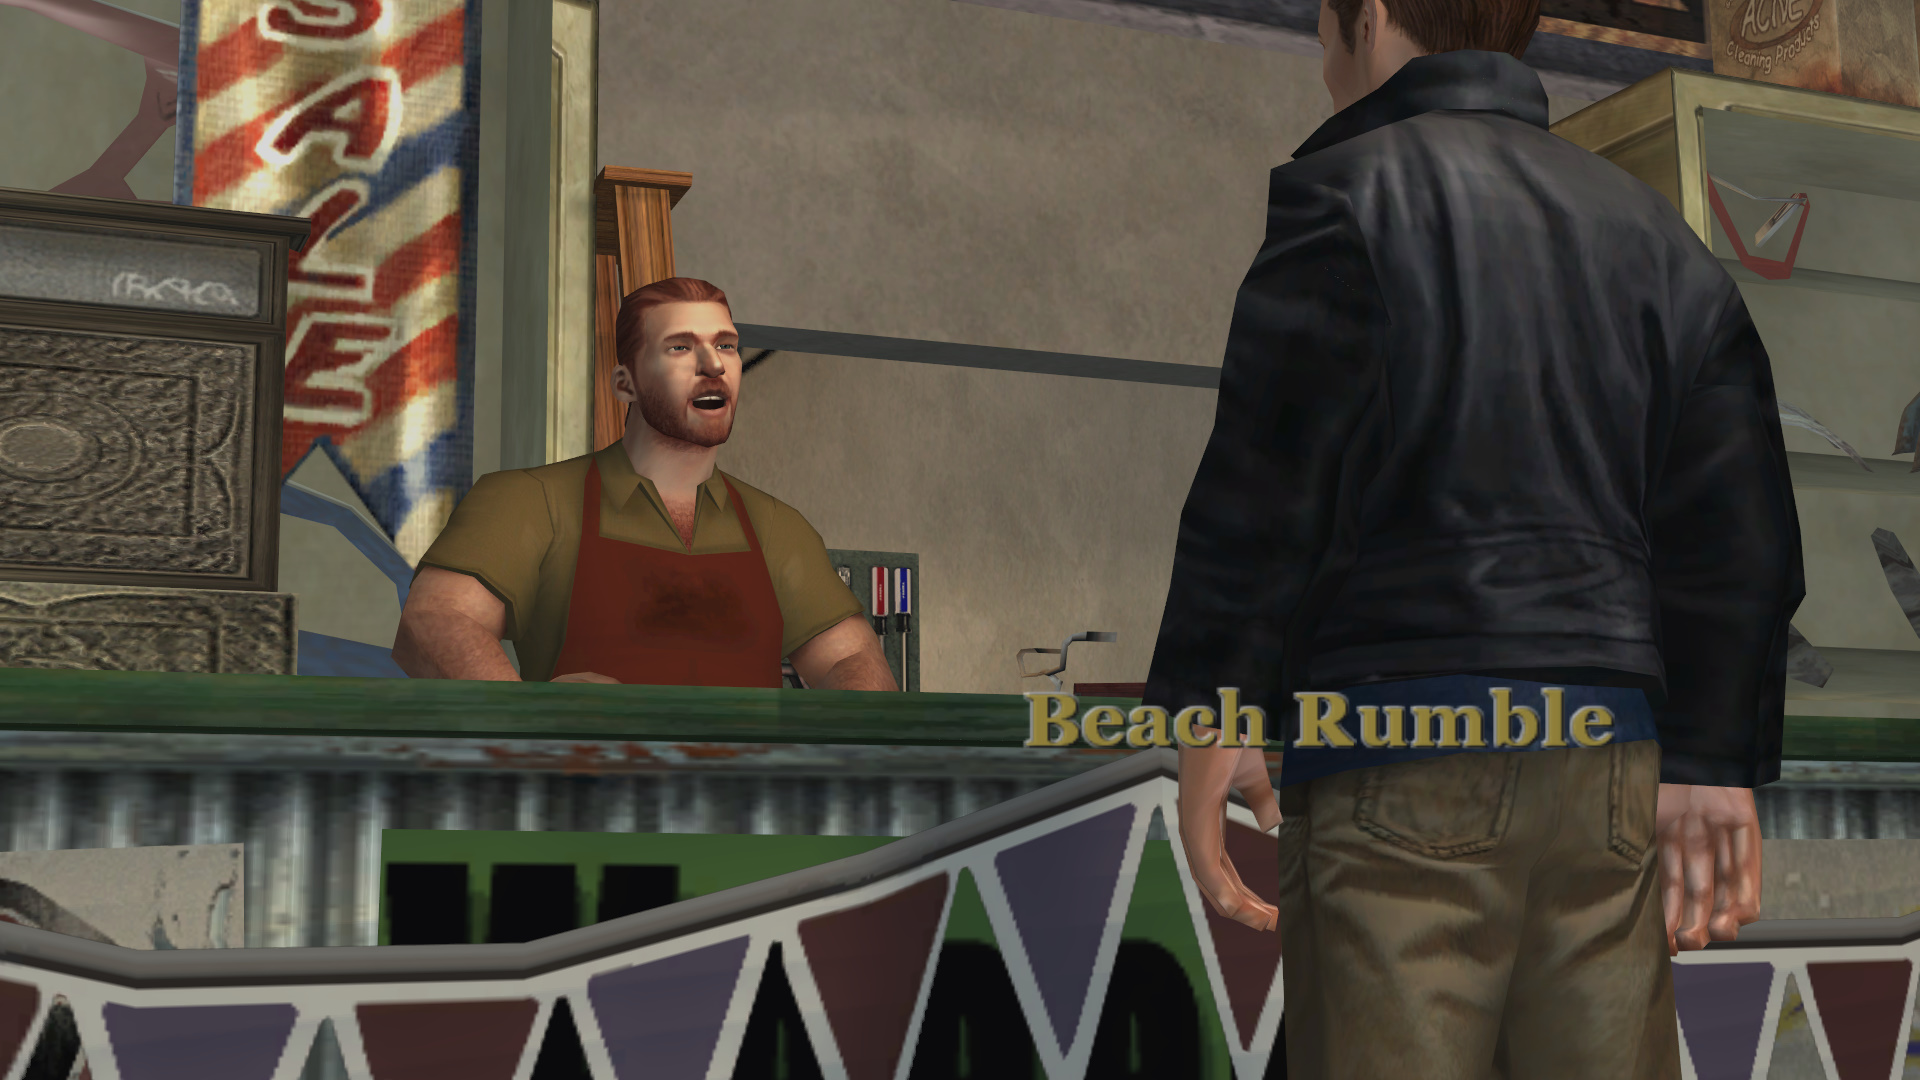 Beach Rumble